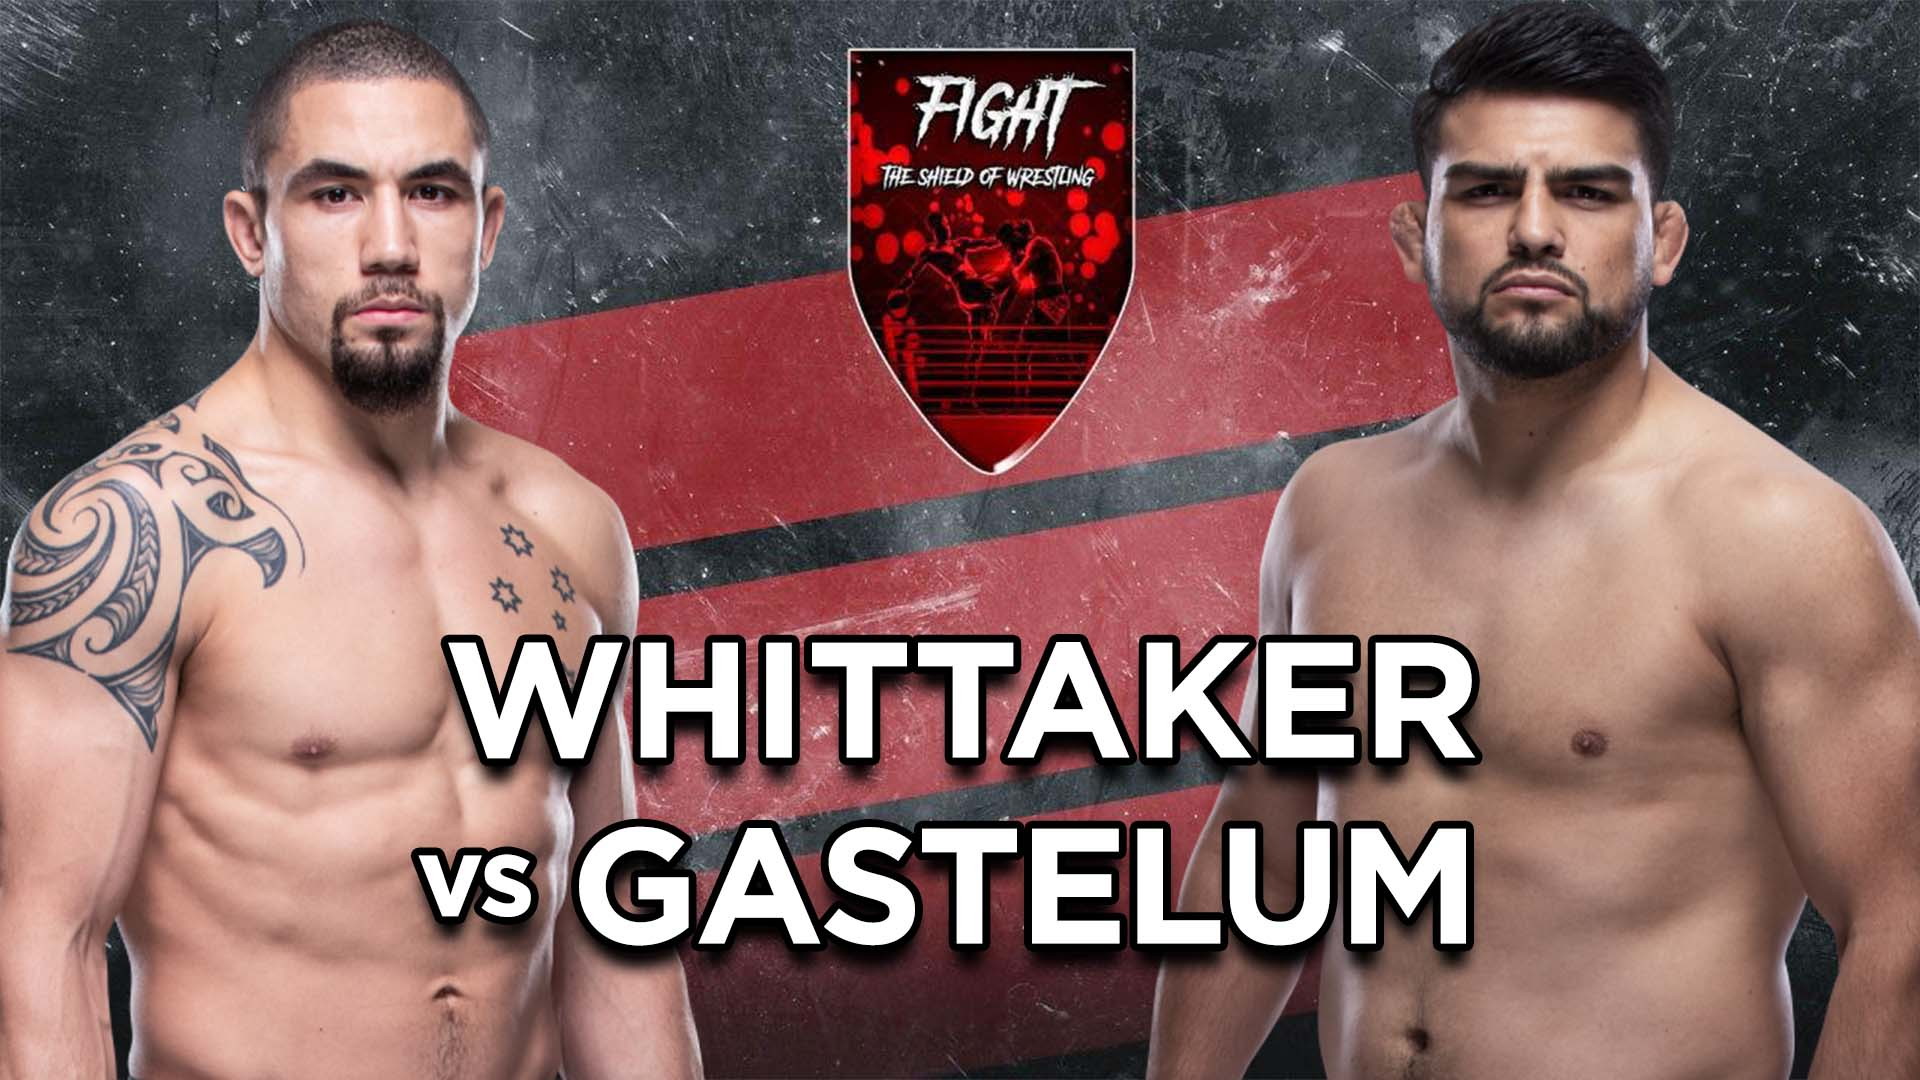 Anteprima UFC Fight Night: Whittaker vs Gastelum